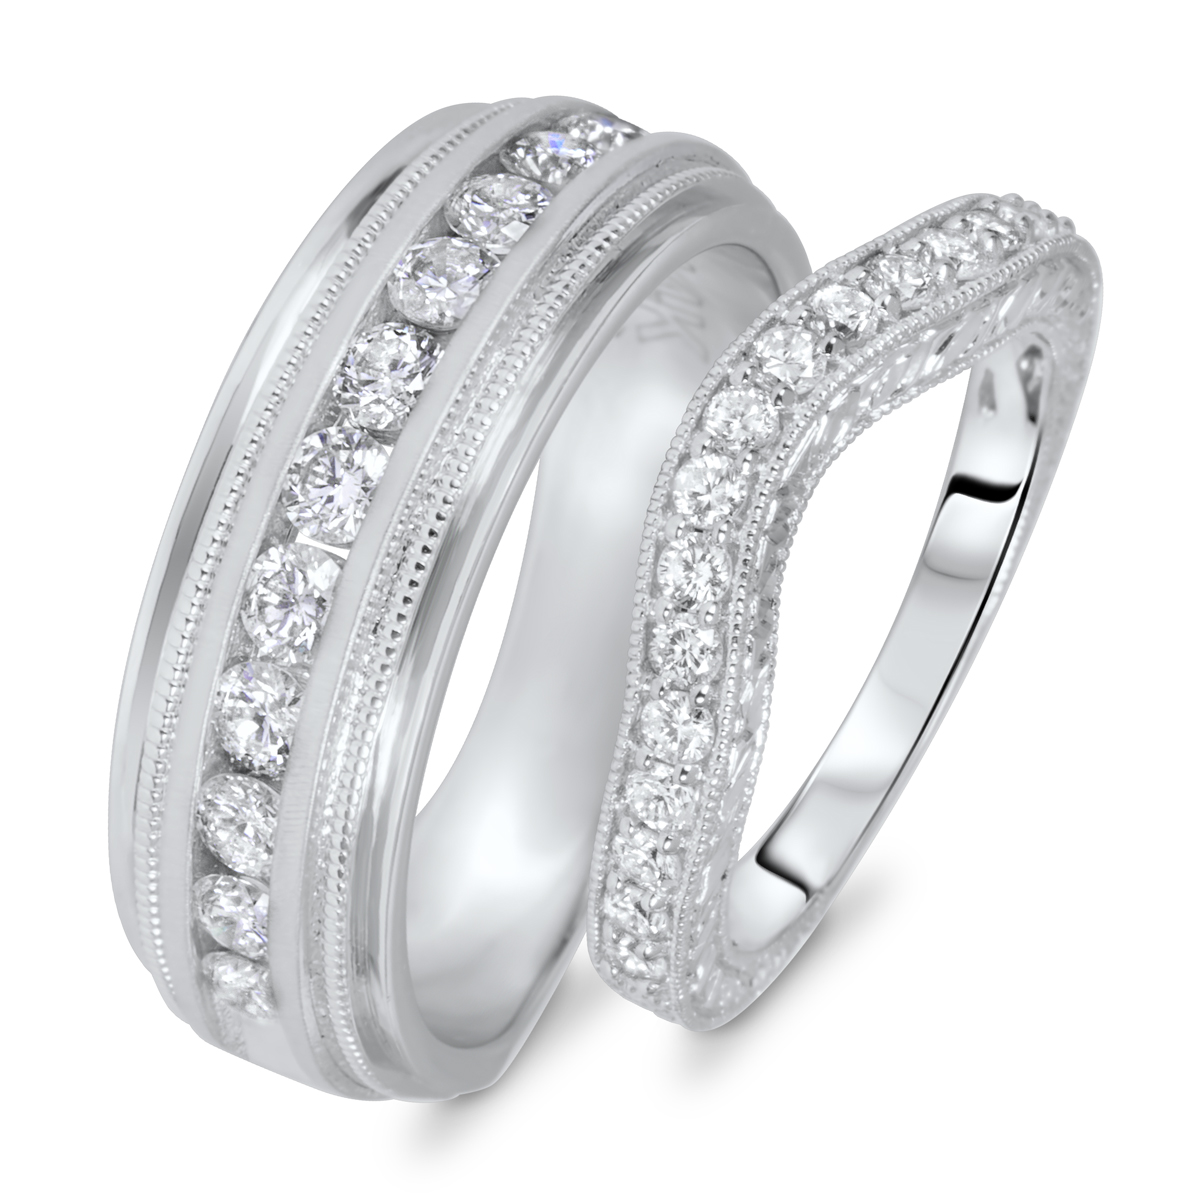 1 Carat T.W. Round Cut Diamond His And Hers Wedding Band Set 10K White Gold